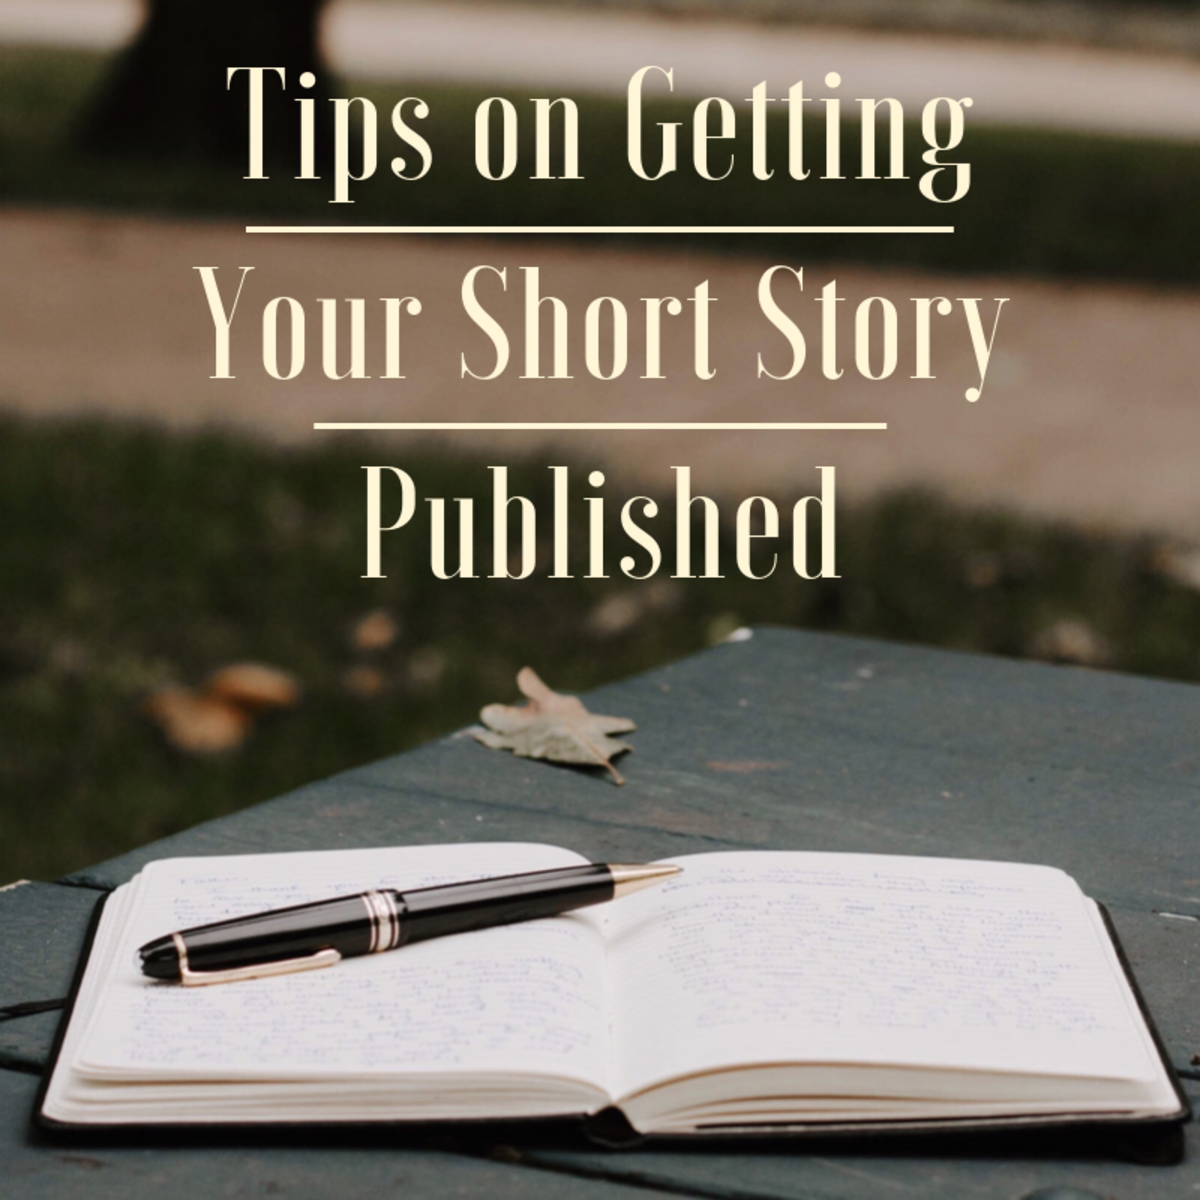 These tips and tricks will help you compose your short story and find a publisher for your work.